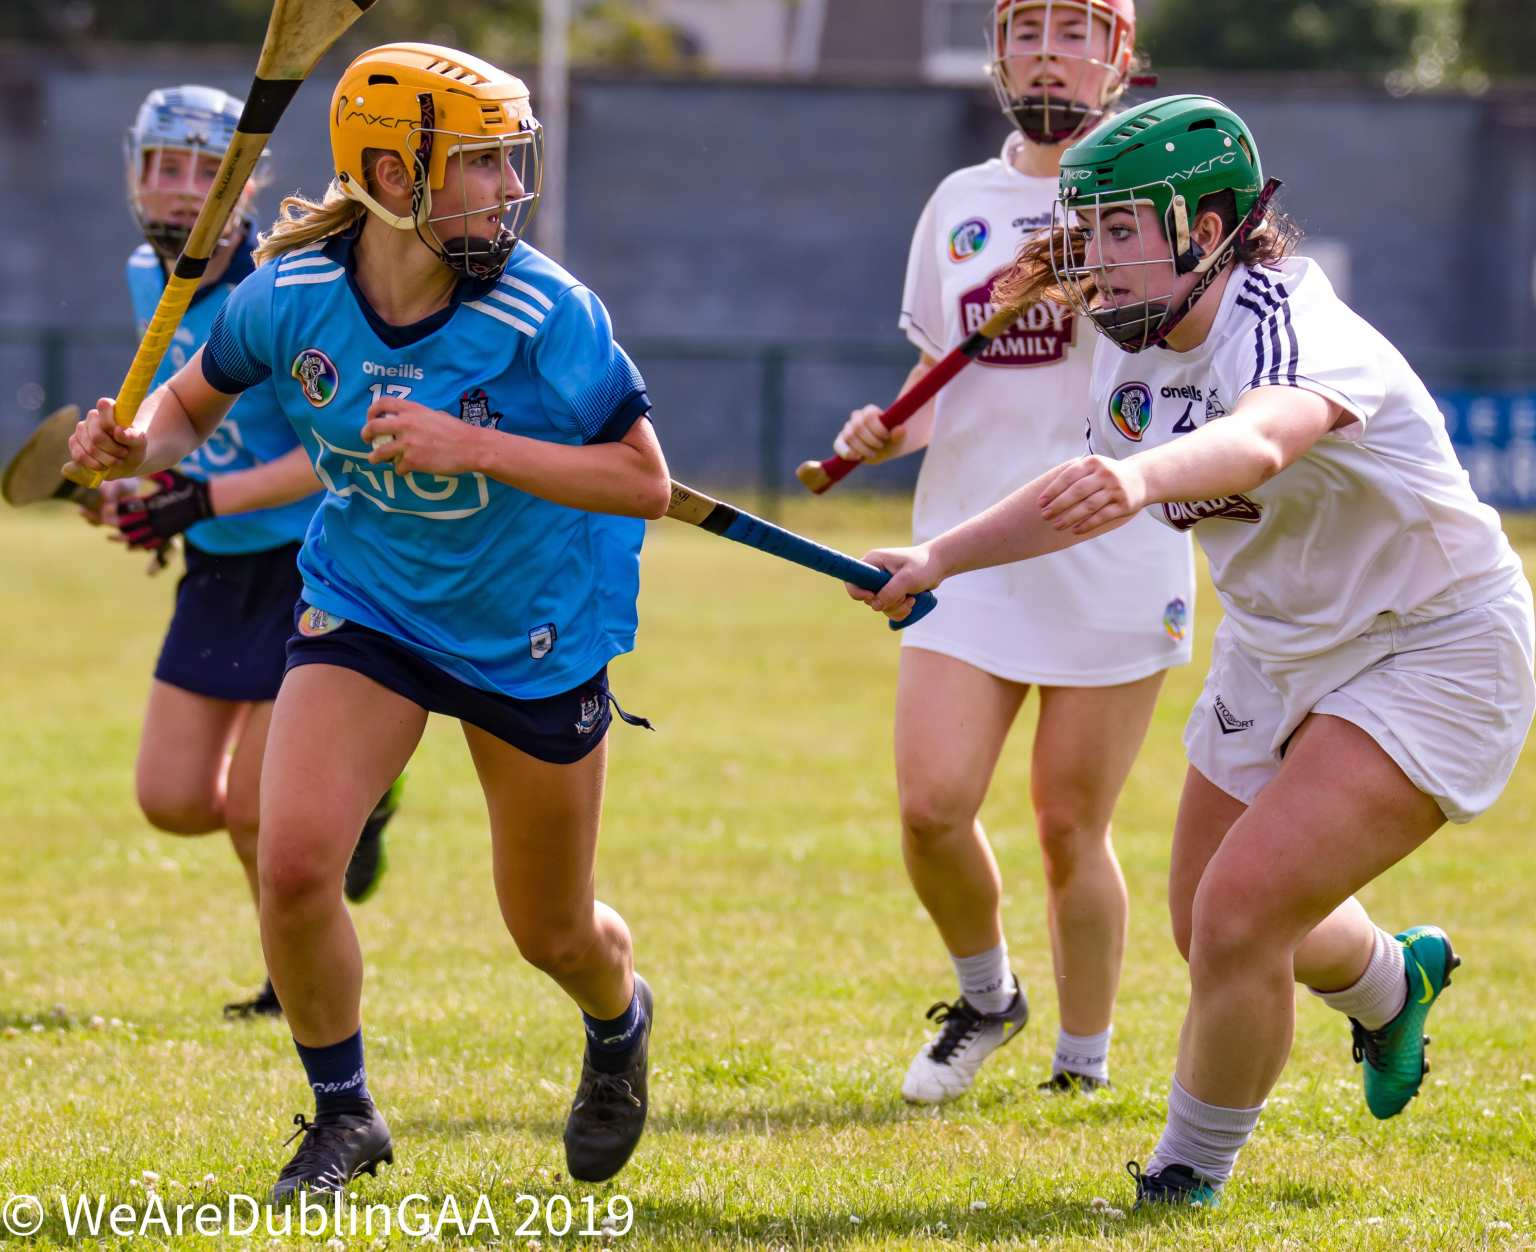 Dublin Intermediate Camogie player Gaby Couch who's two second half goals paved the way for Dublin's win against Kildare in the championship